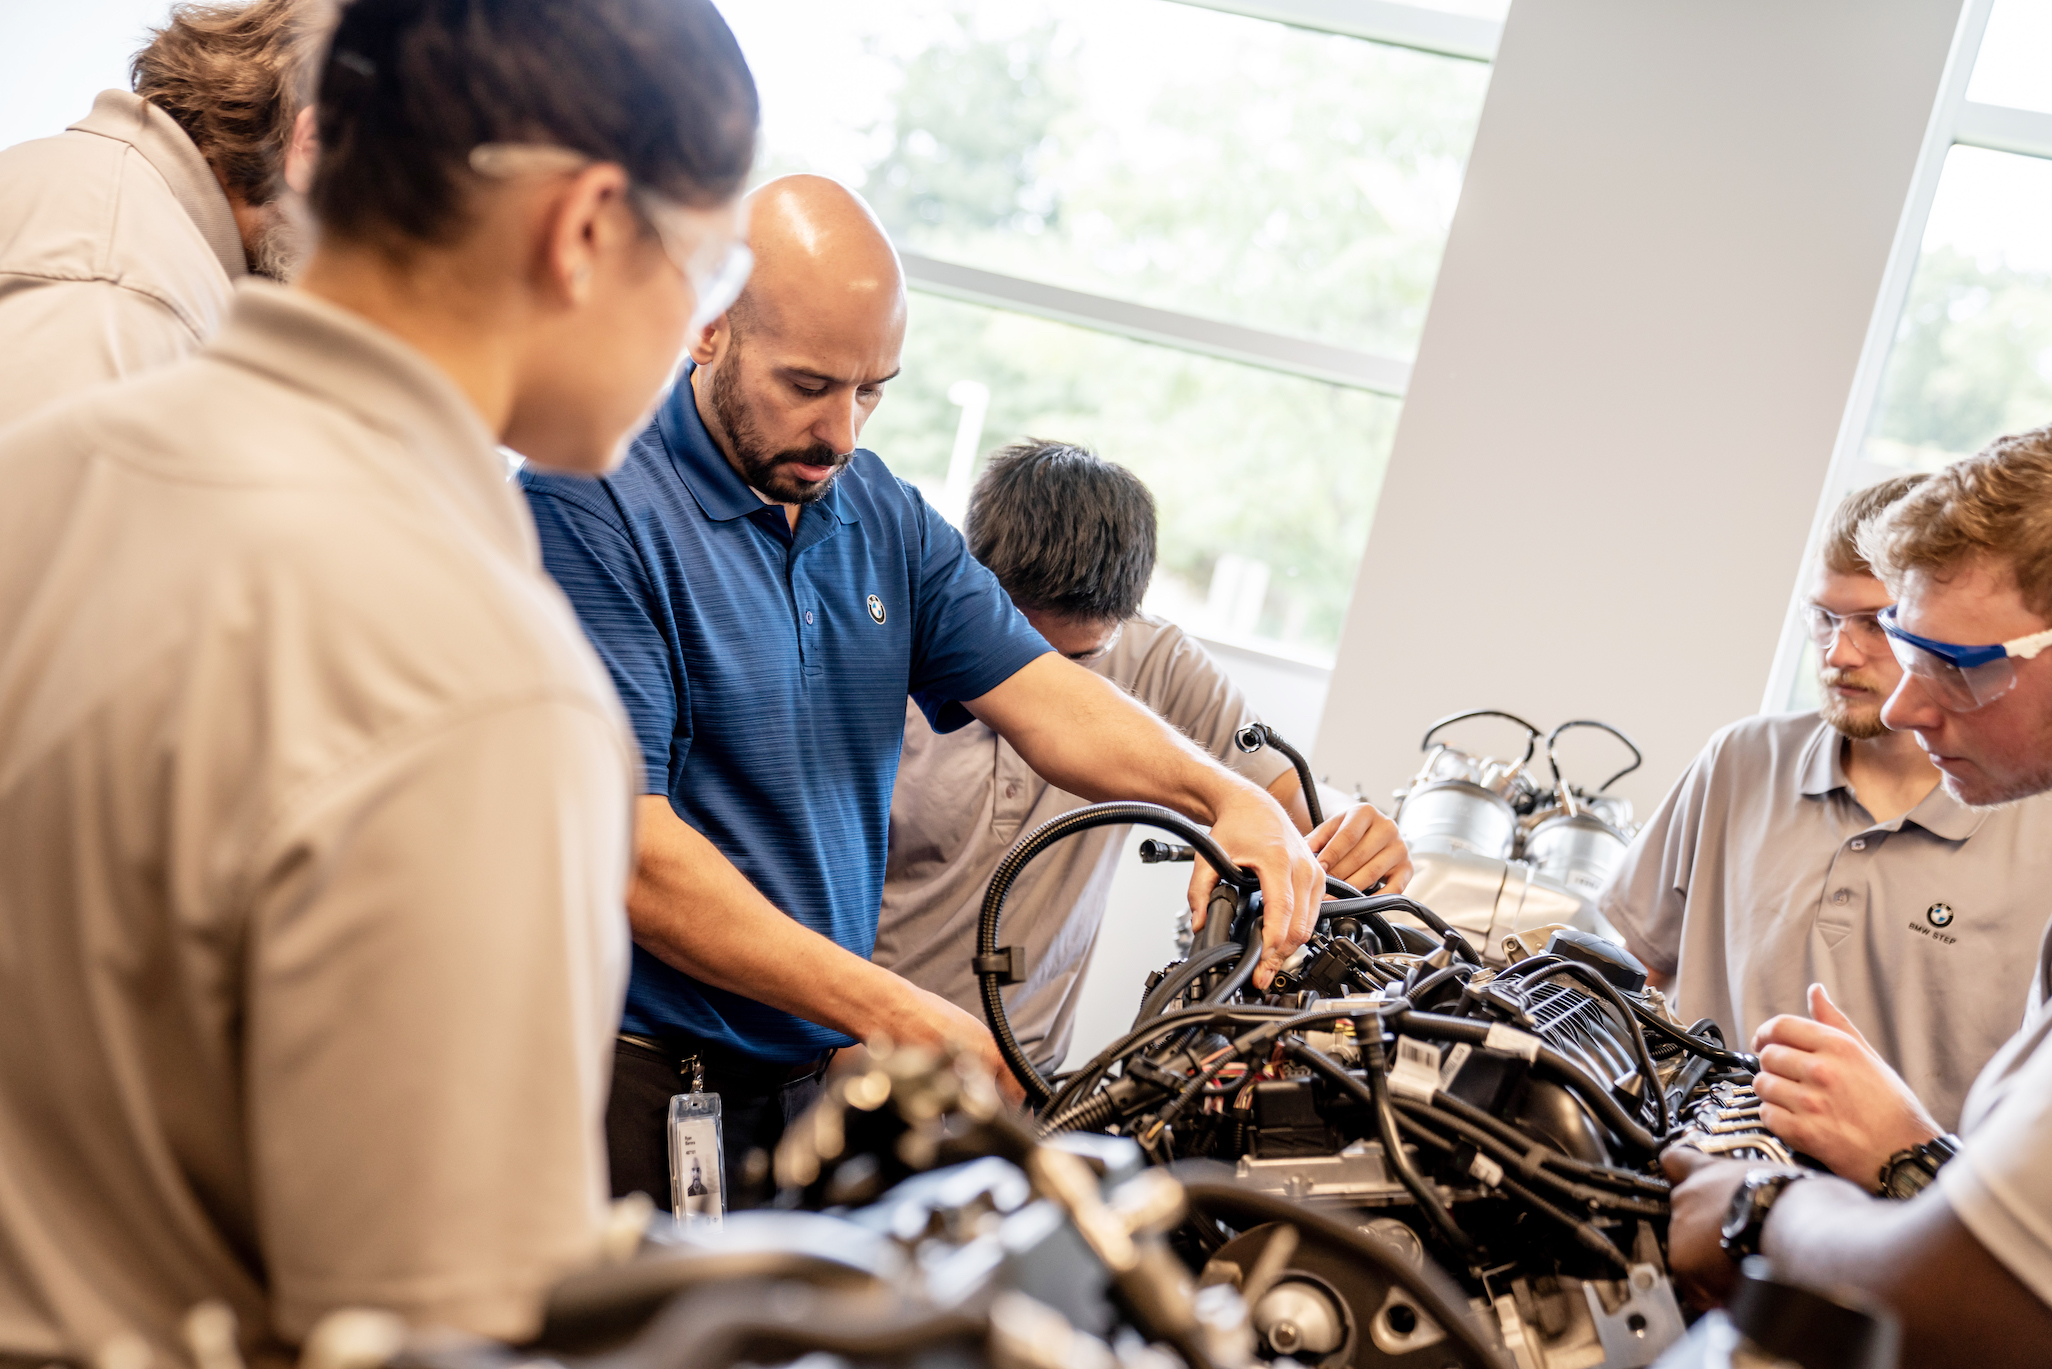 A large group of students watch a STEP instructor examine an engine.